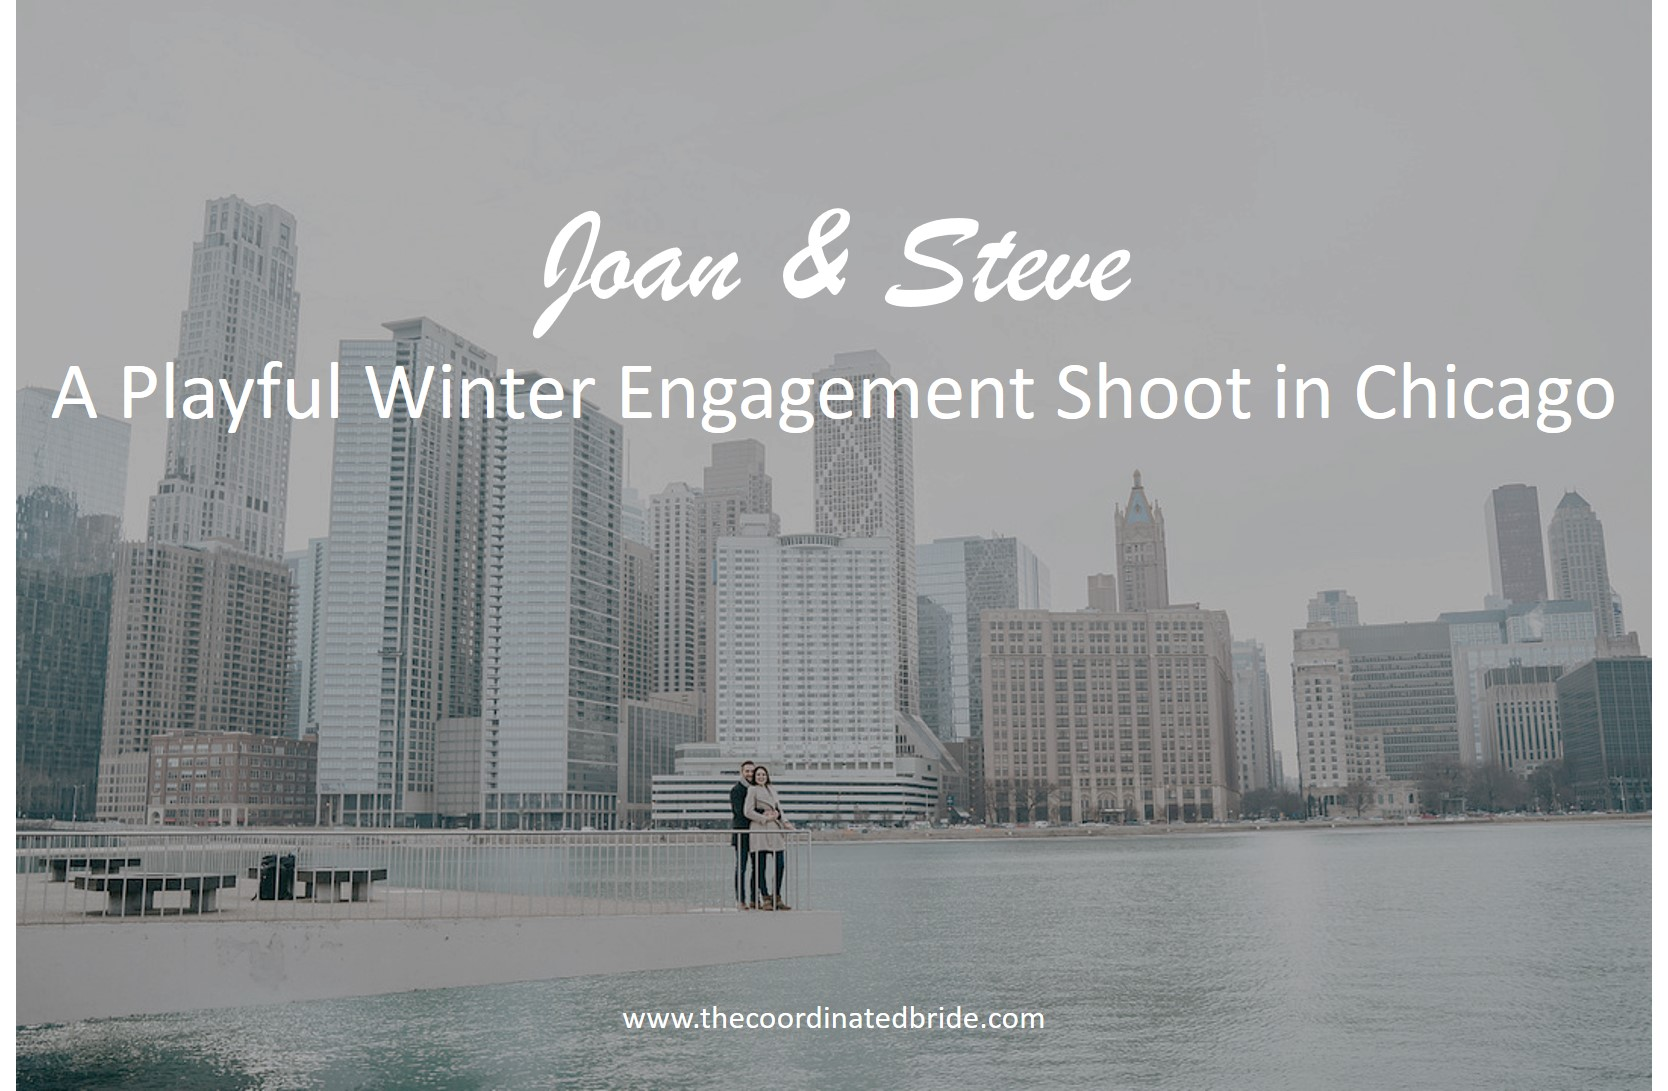 A Playful Winter Engagement Shoot in Chicago